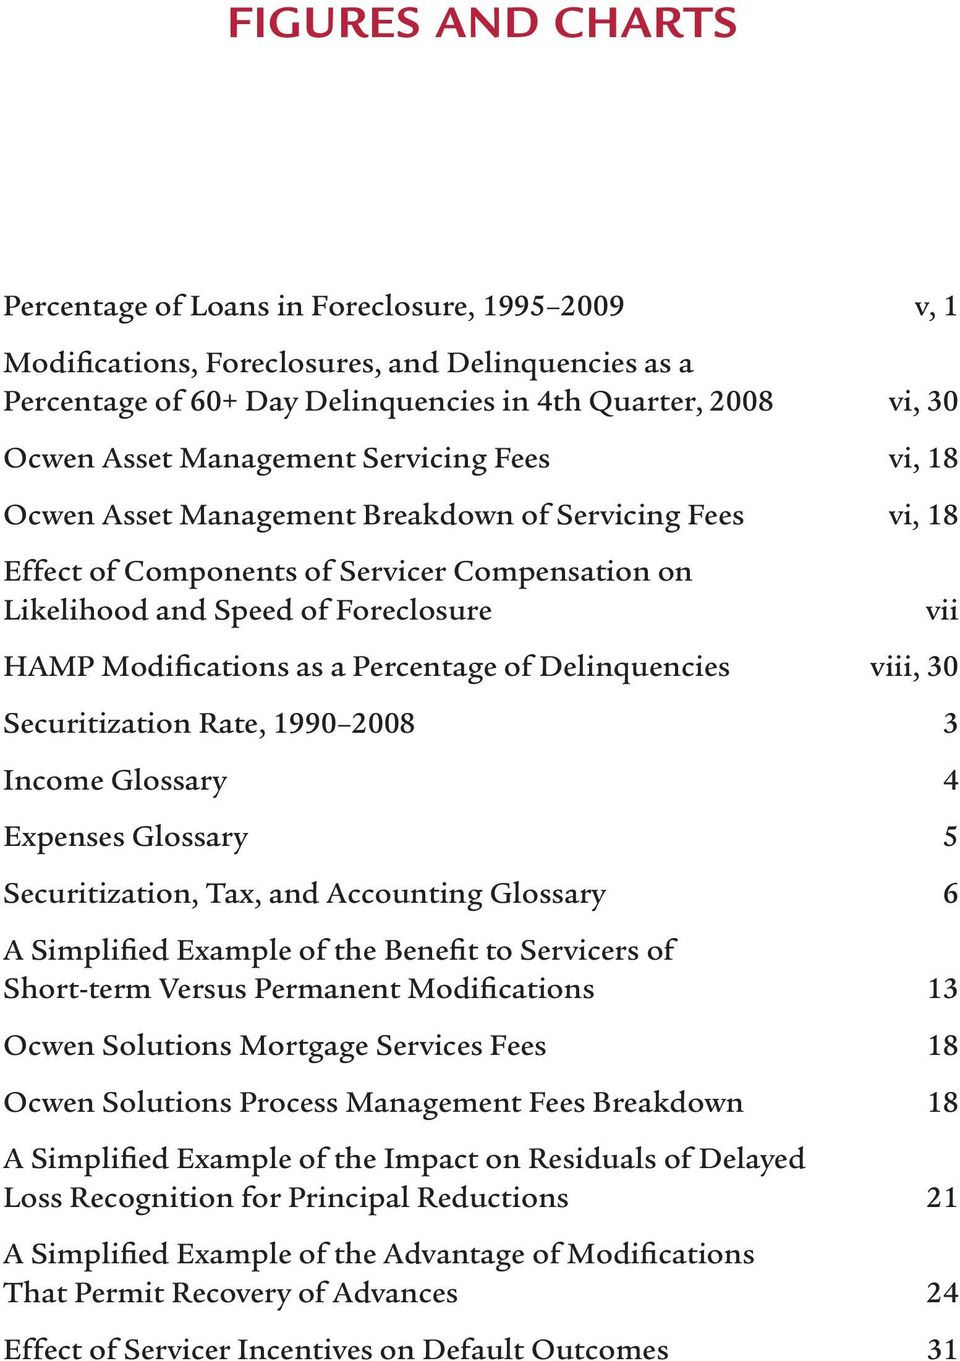 Percentage of Delinquencies viii, 30 Securitization Rate, 1990 2008 3 Income Glossary 4 Expenses Glossary 5 Securitization, Tax, and Accounting Glossary 6 A Simplified Example of the Benefit to